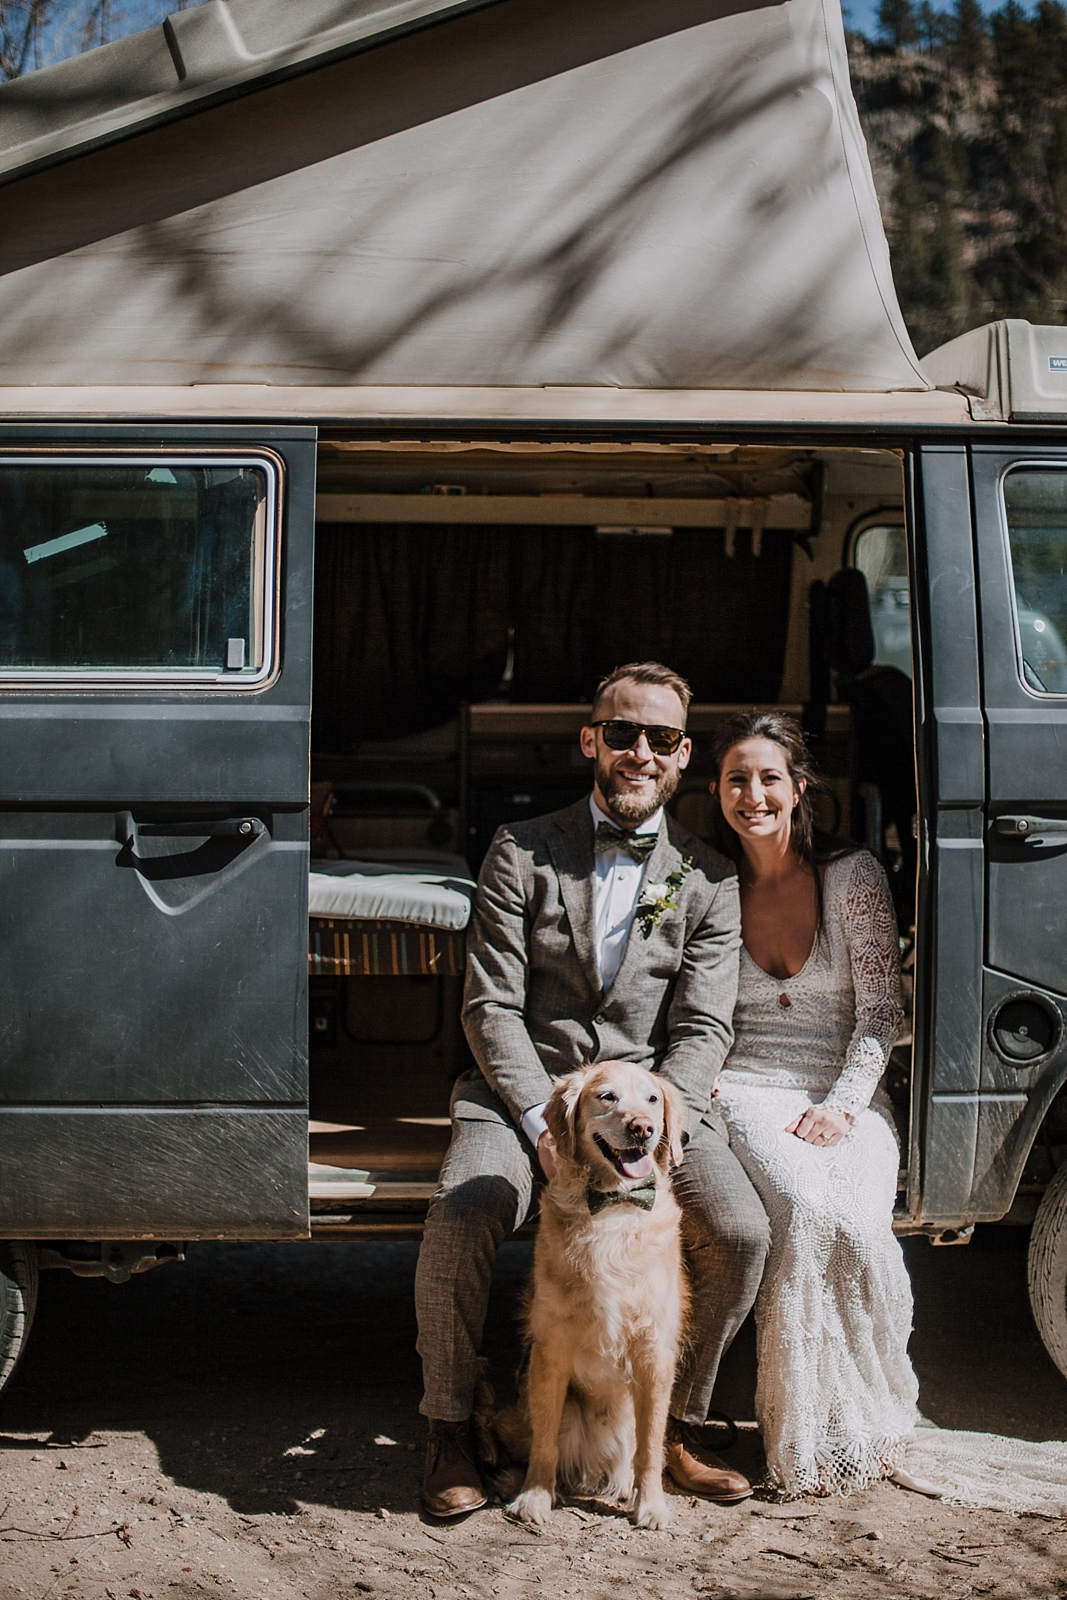 bride and groom with dog, self solemnizing elopement, gateway natural area elopement, seaman reservoir elopement, fort collins colorado elopement, colorado elopement, westfalia van elopement